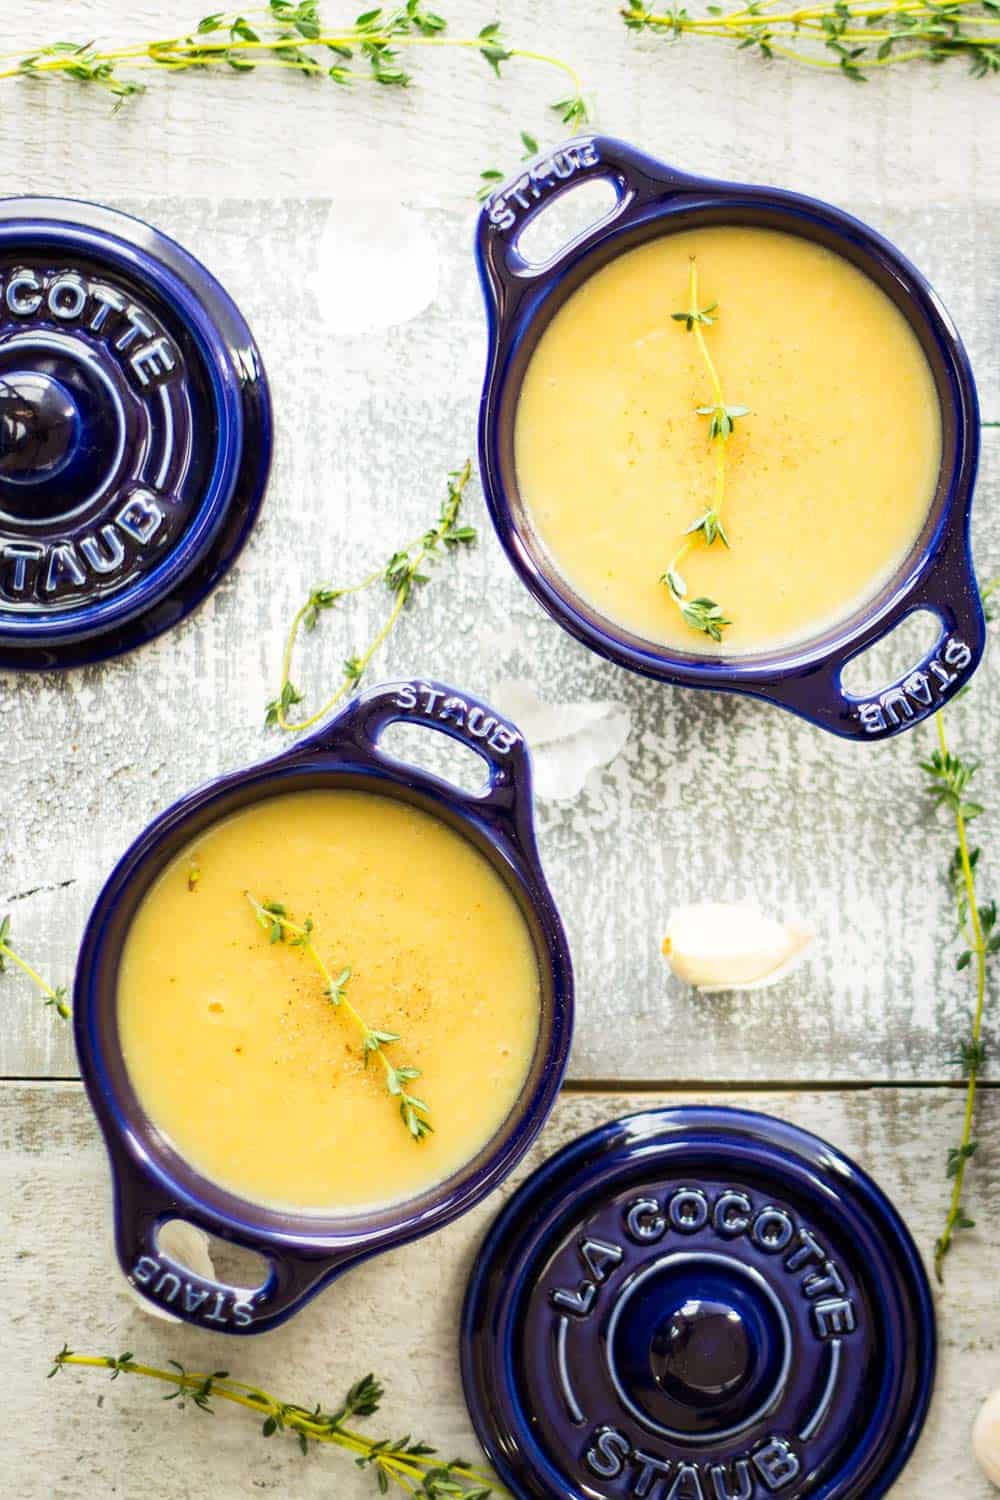 A creamy and heart-warming and potatoes-kissing-your-belly-from-the-inside kind of delicious Roasted Garlic Potato Leek Soup you MUST try!